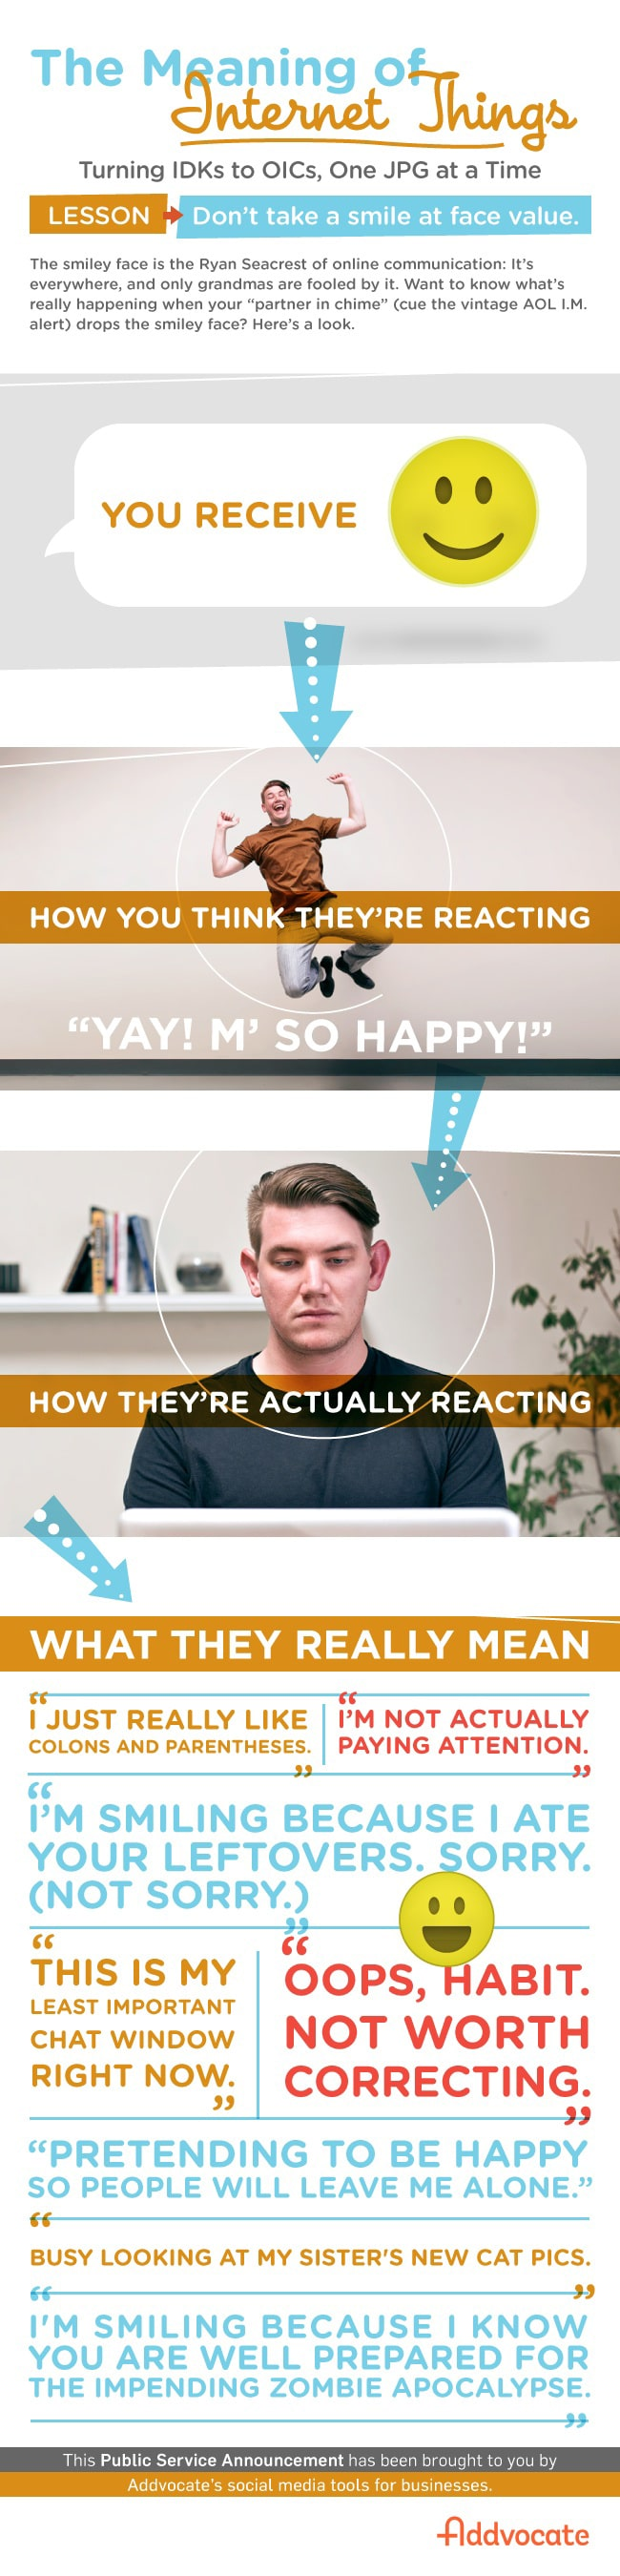 What The Social Media Smiley Face Emoticon Really Means [Infographic]